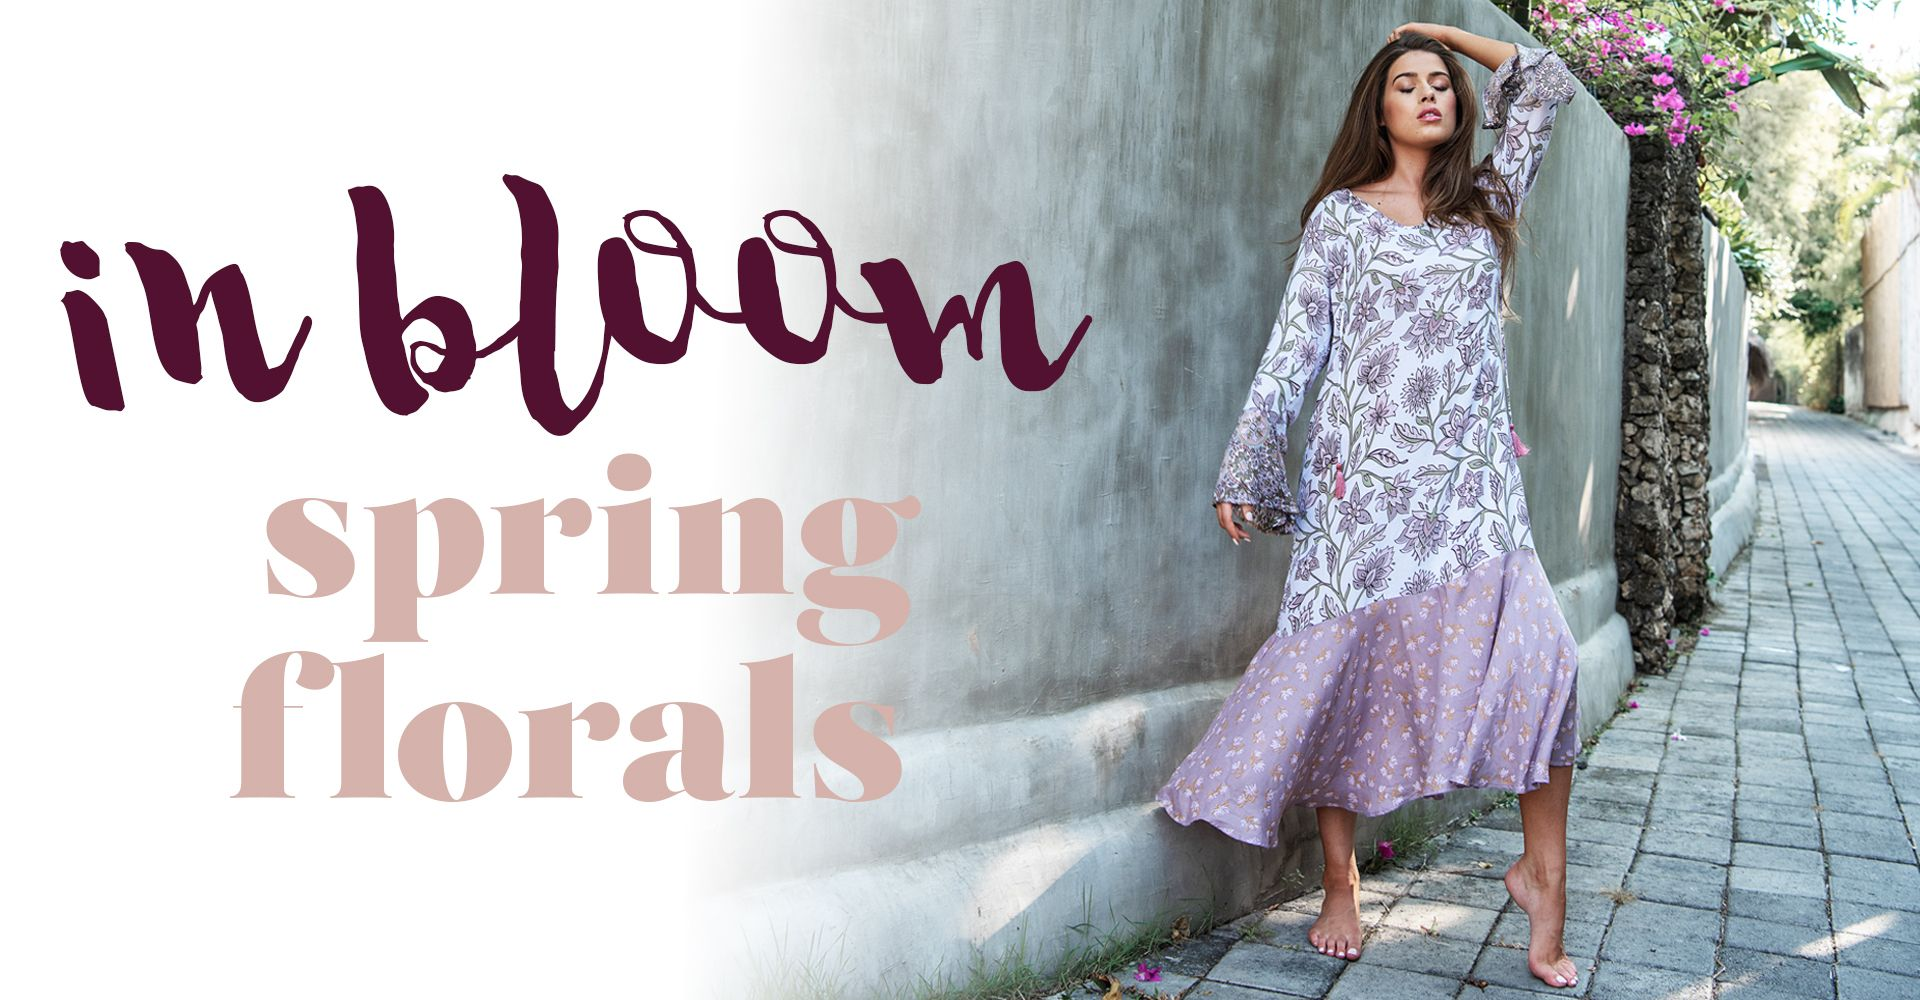 Cobalt and Tawny in bloom spring florals